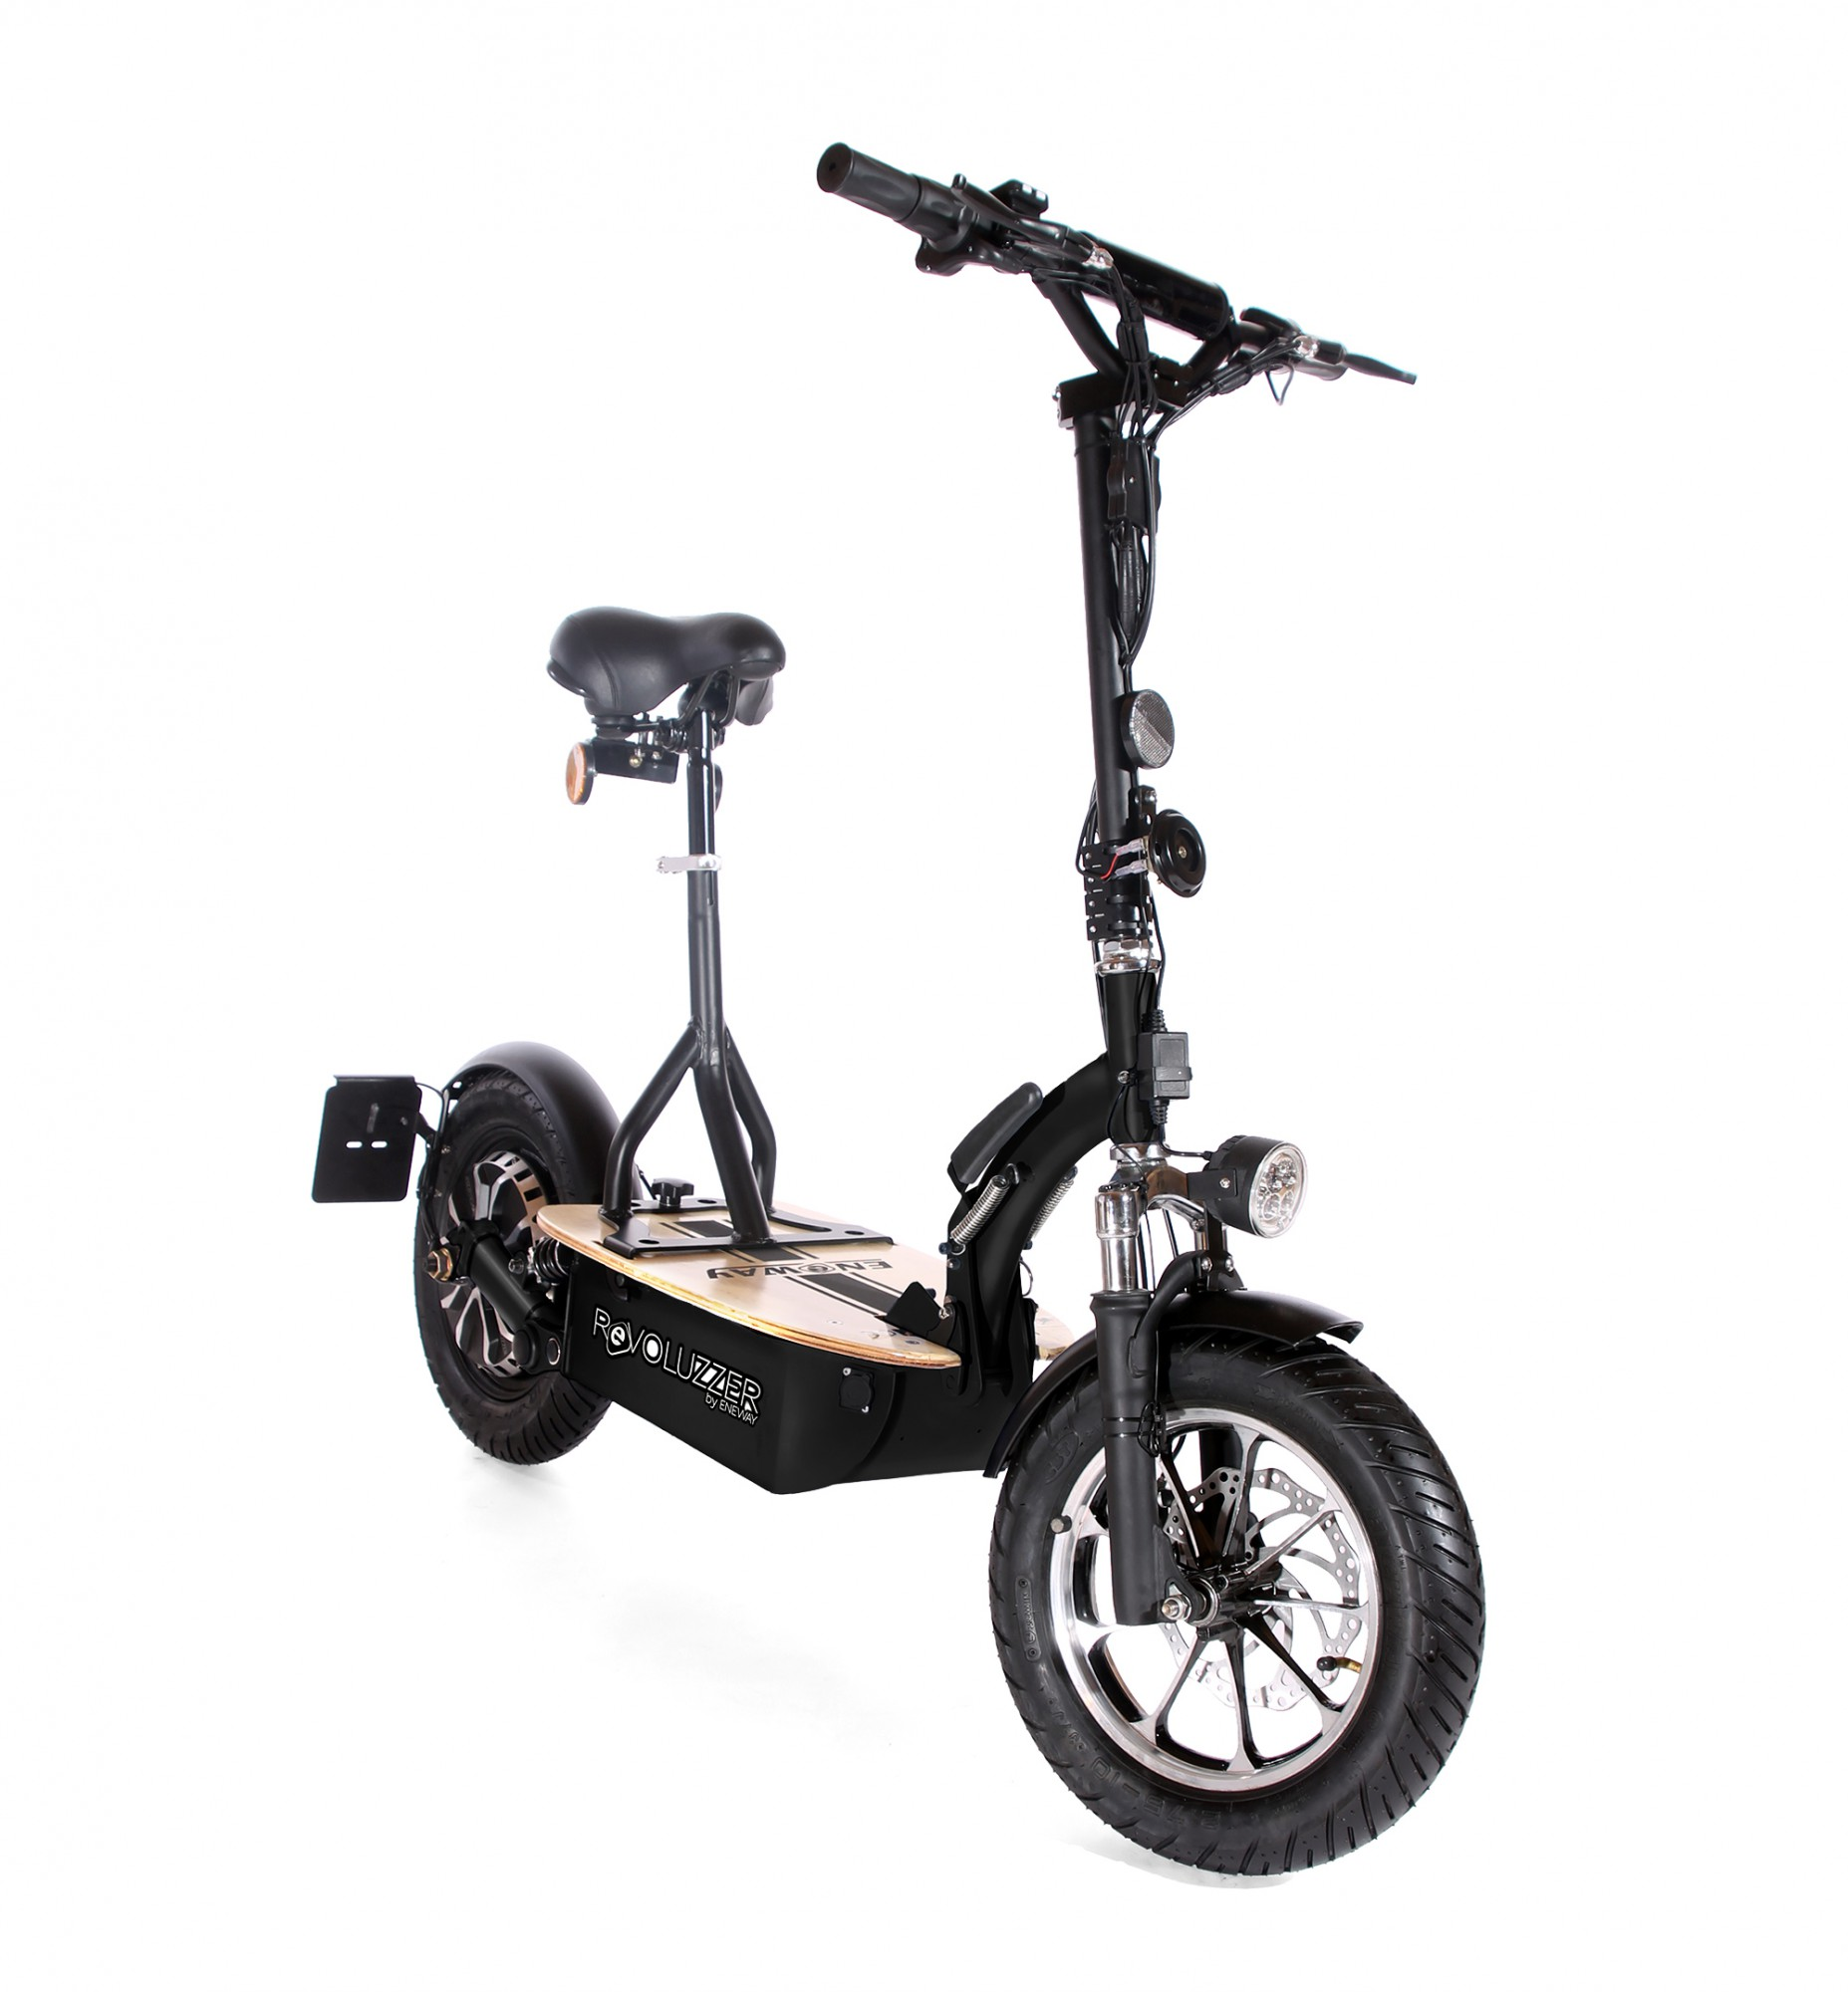 der revoluzzer45 e scooter 45km h e fahrzeuge. Black Bedroom Furniture Sets. Home Design Ideas